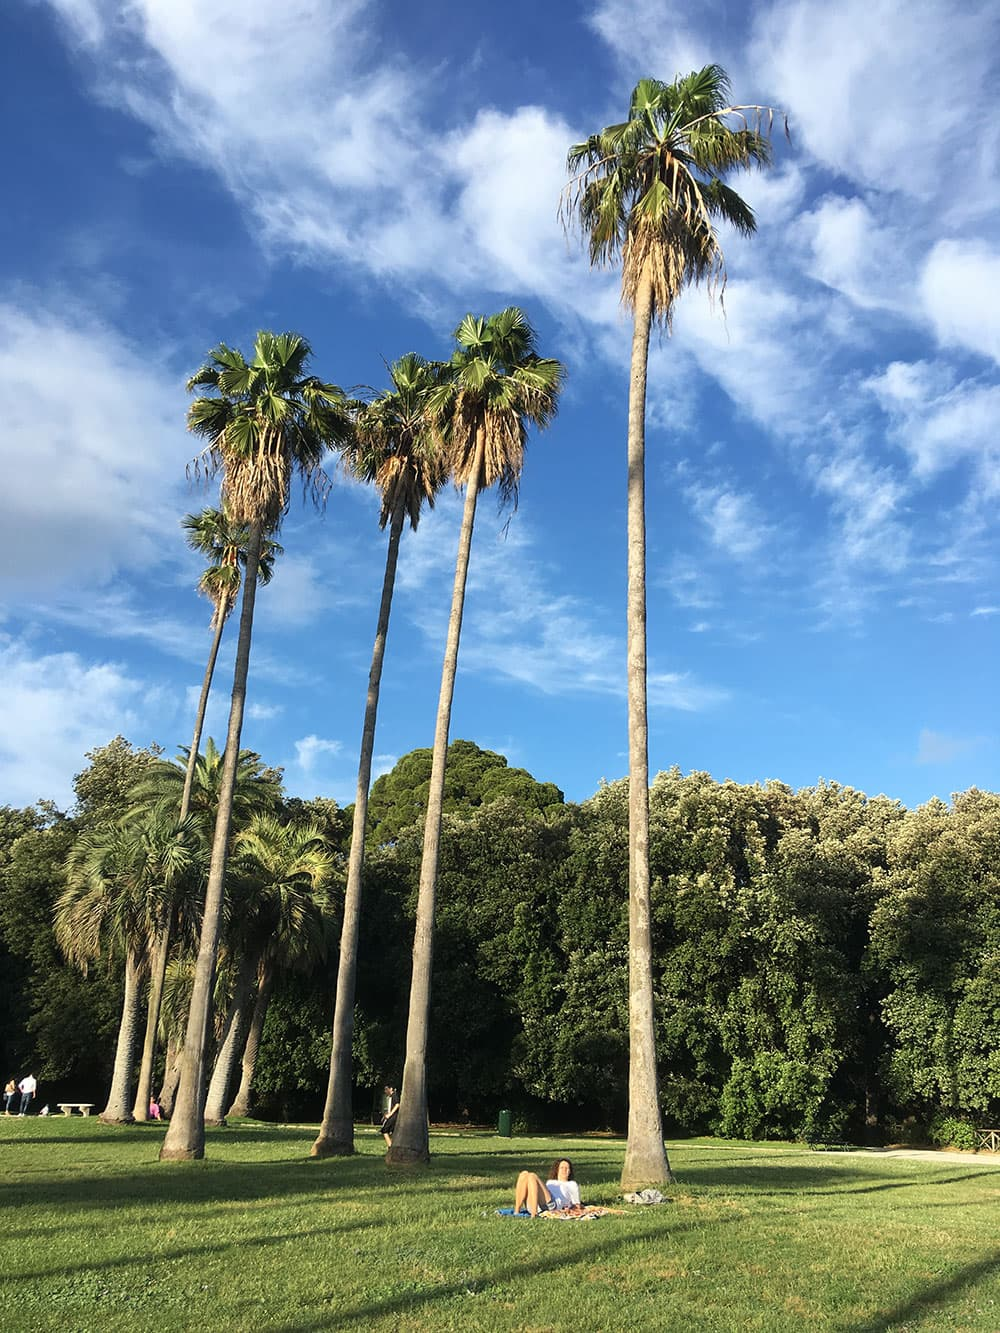 Tall trees in the Royal Park at Capodimonte